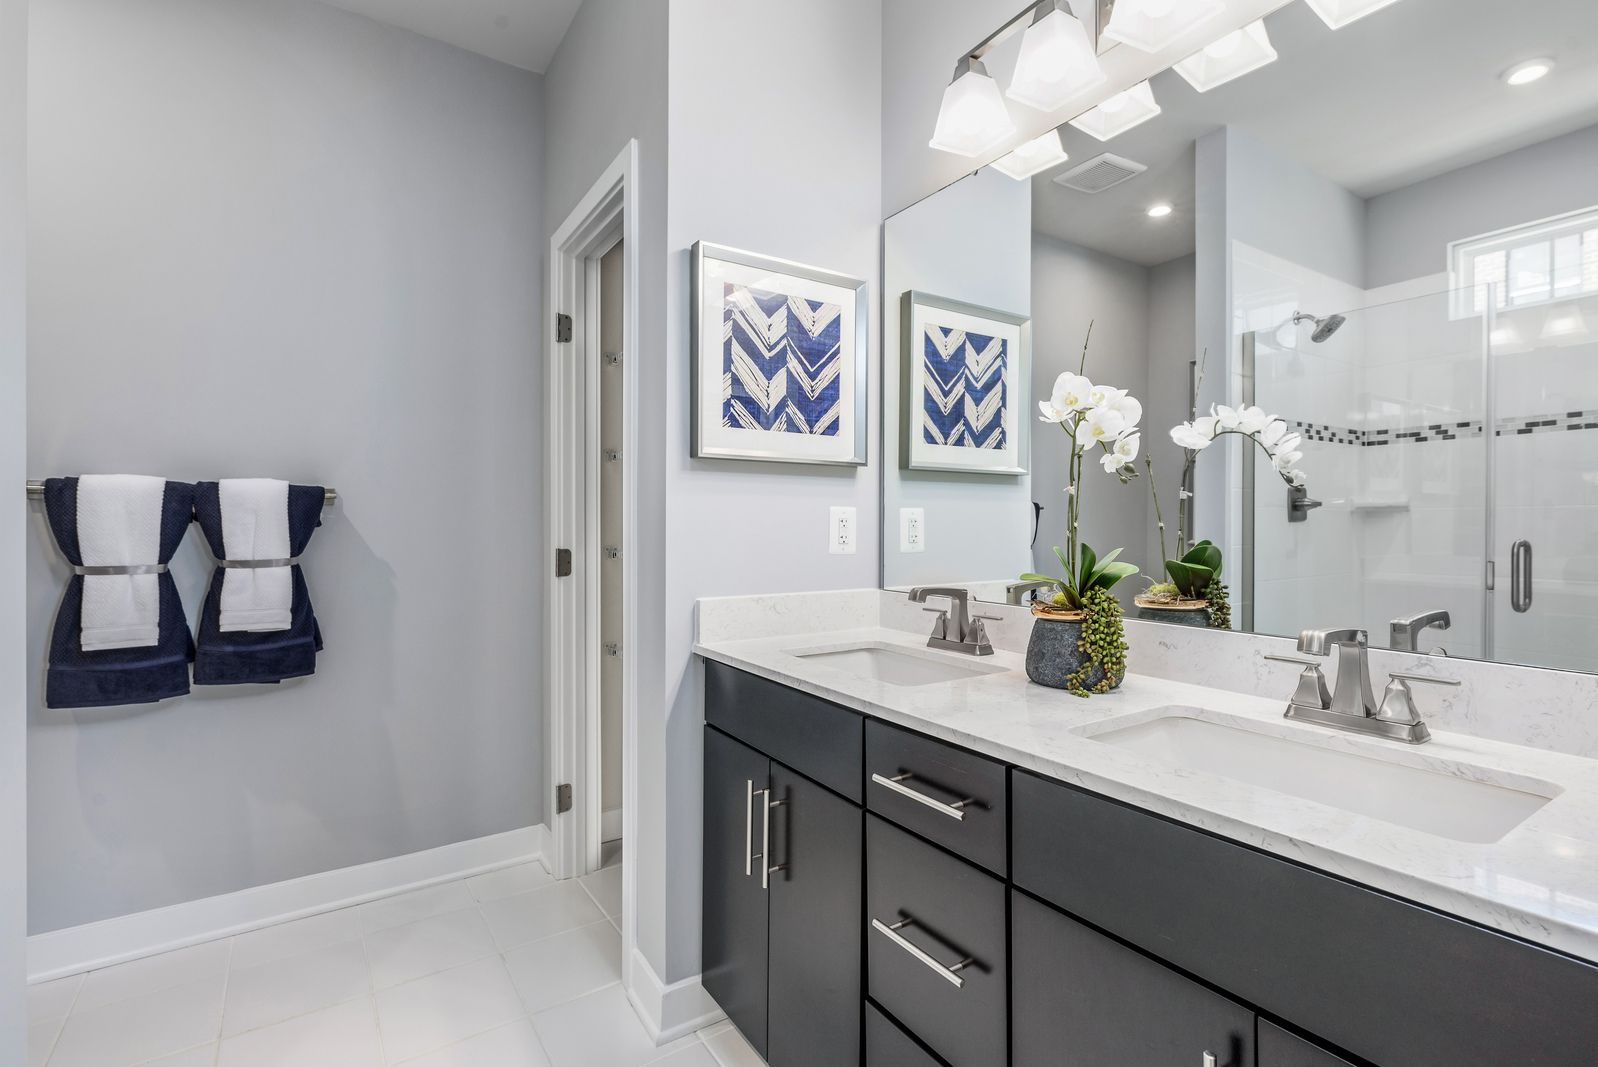 Bathroom featured in the McPherson By Ryan Homes in Baltimore, MD